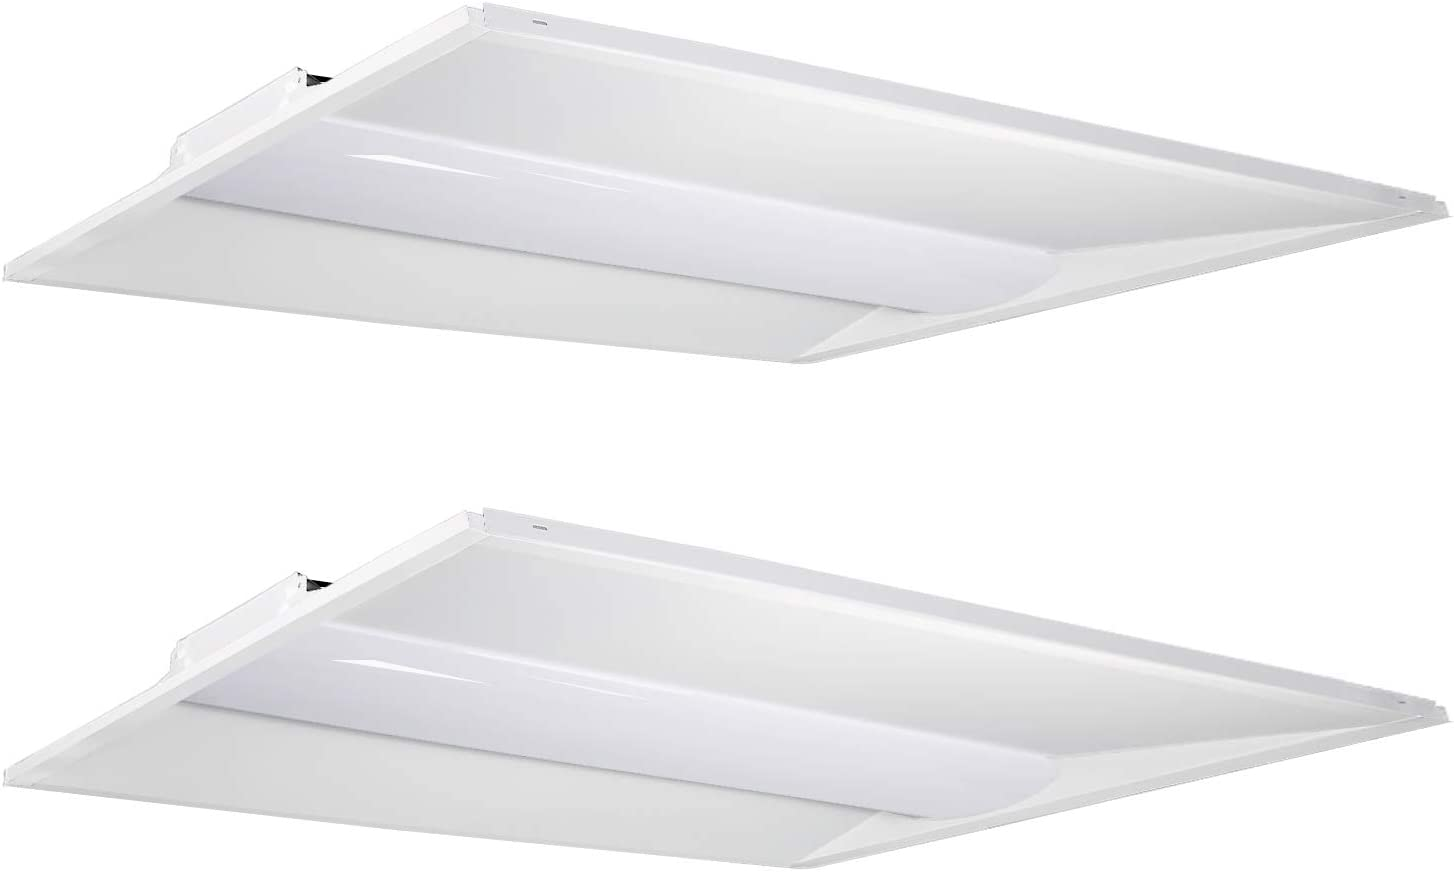 Hykolity 2x4 FT 50W 5000K Flat LED Troffer Panel Light 0-10V Dimmable Drop